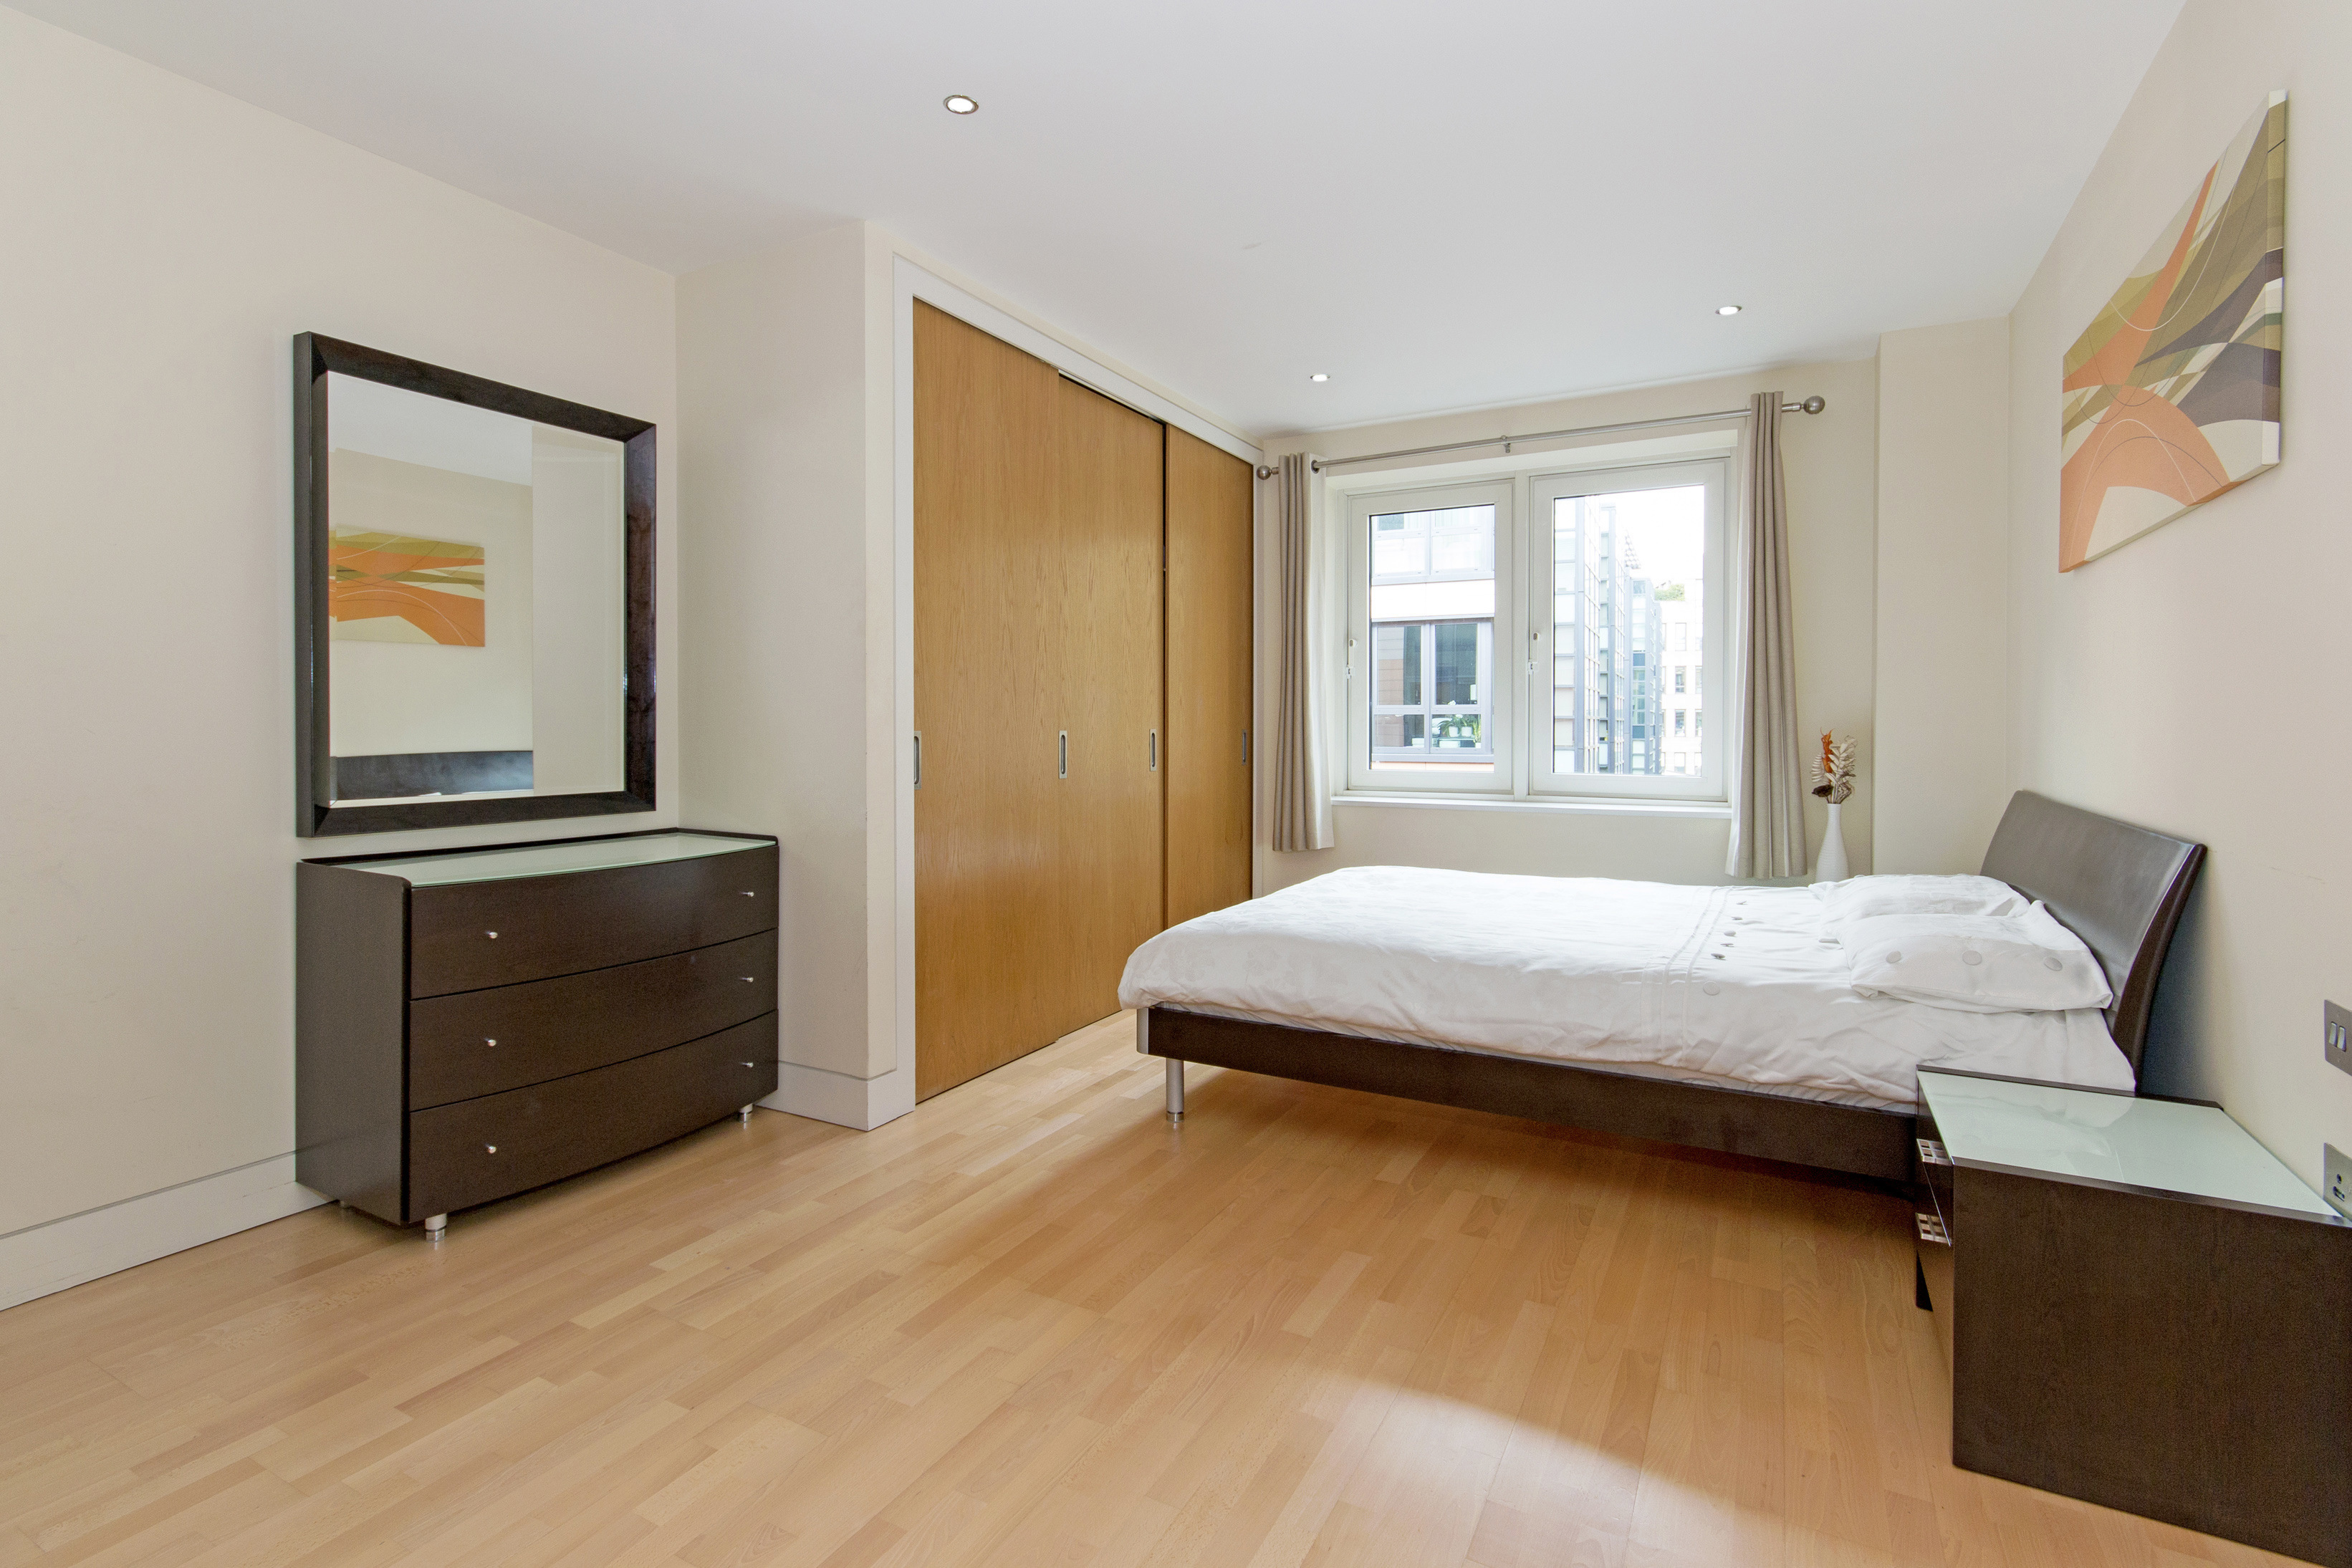 2 Bed Apartment To Rent 8 High Timber Street London Ec4v 3pa